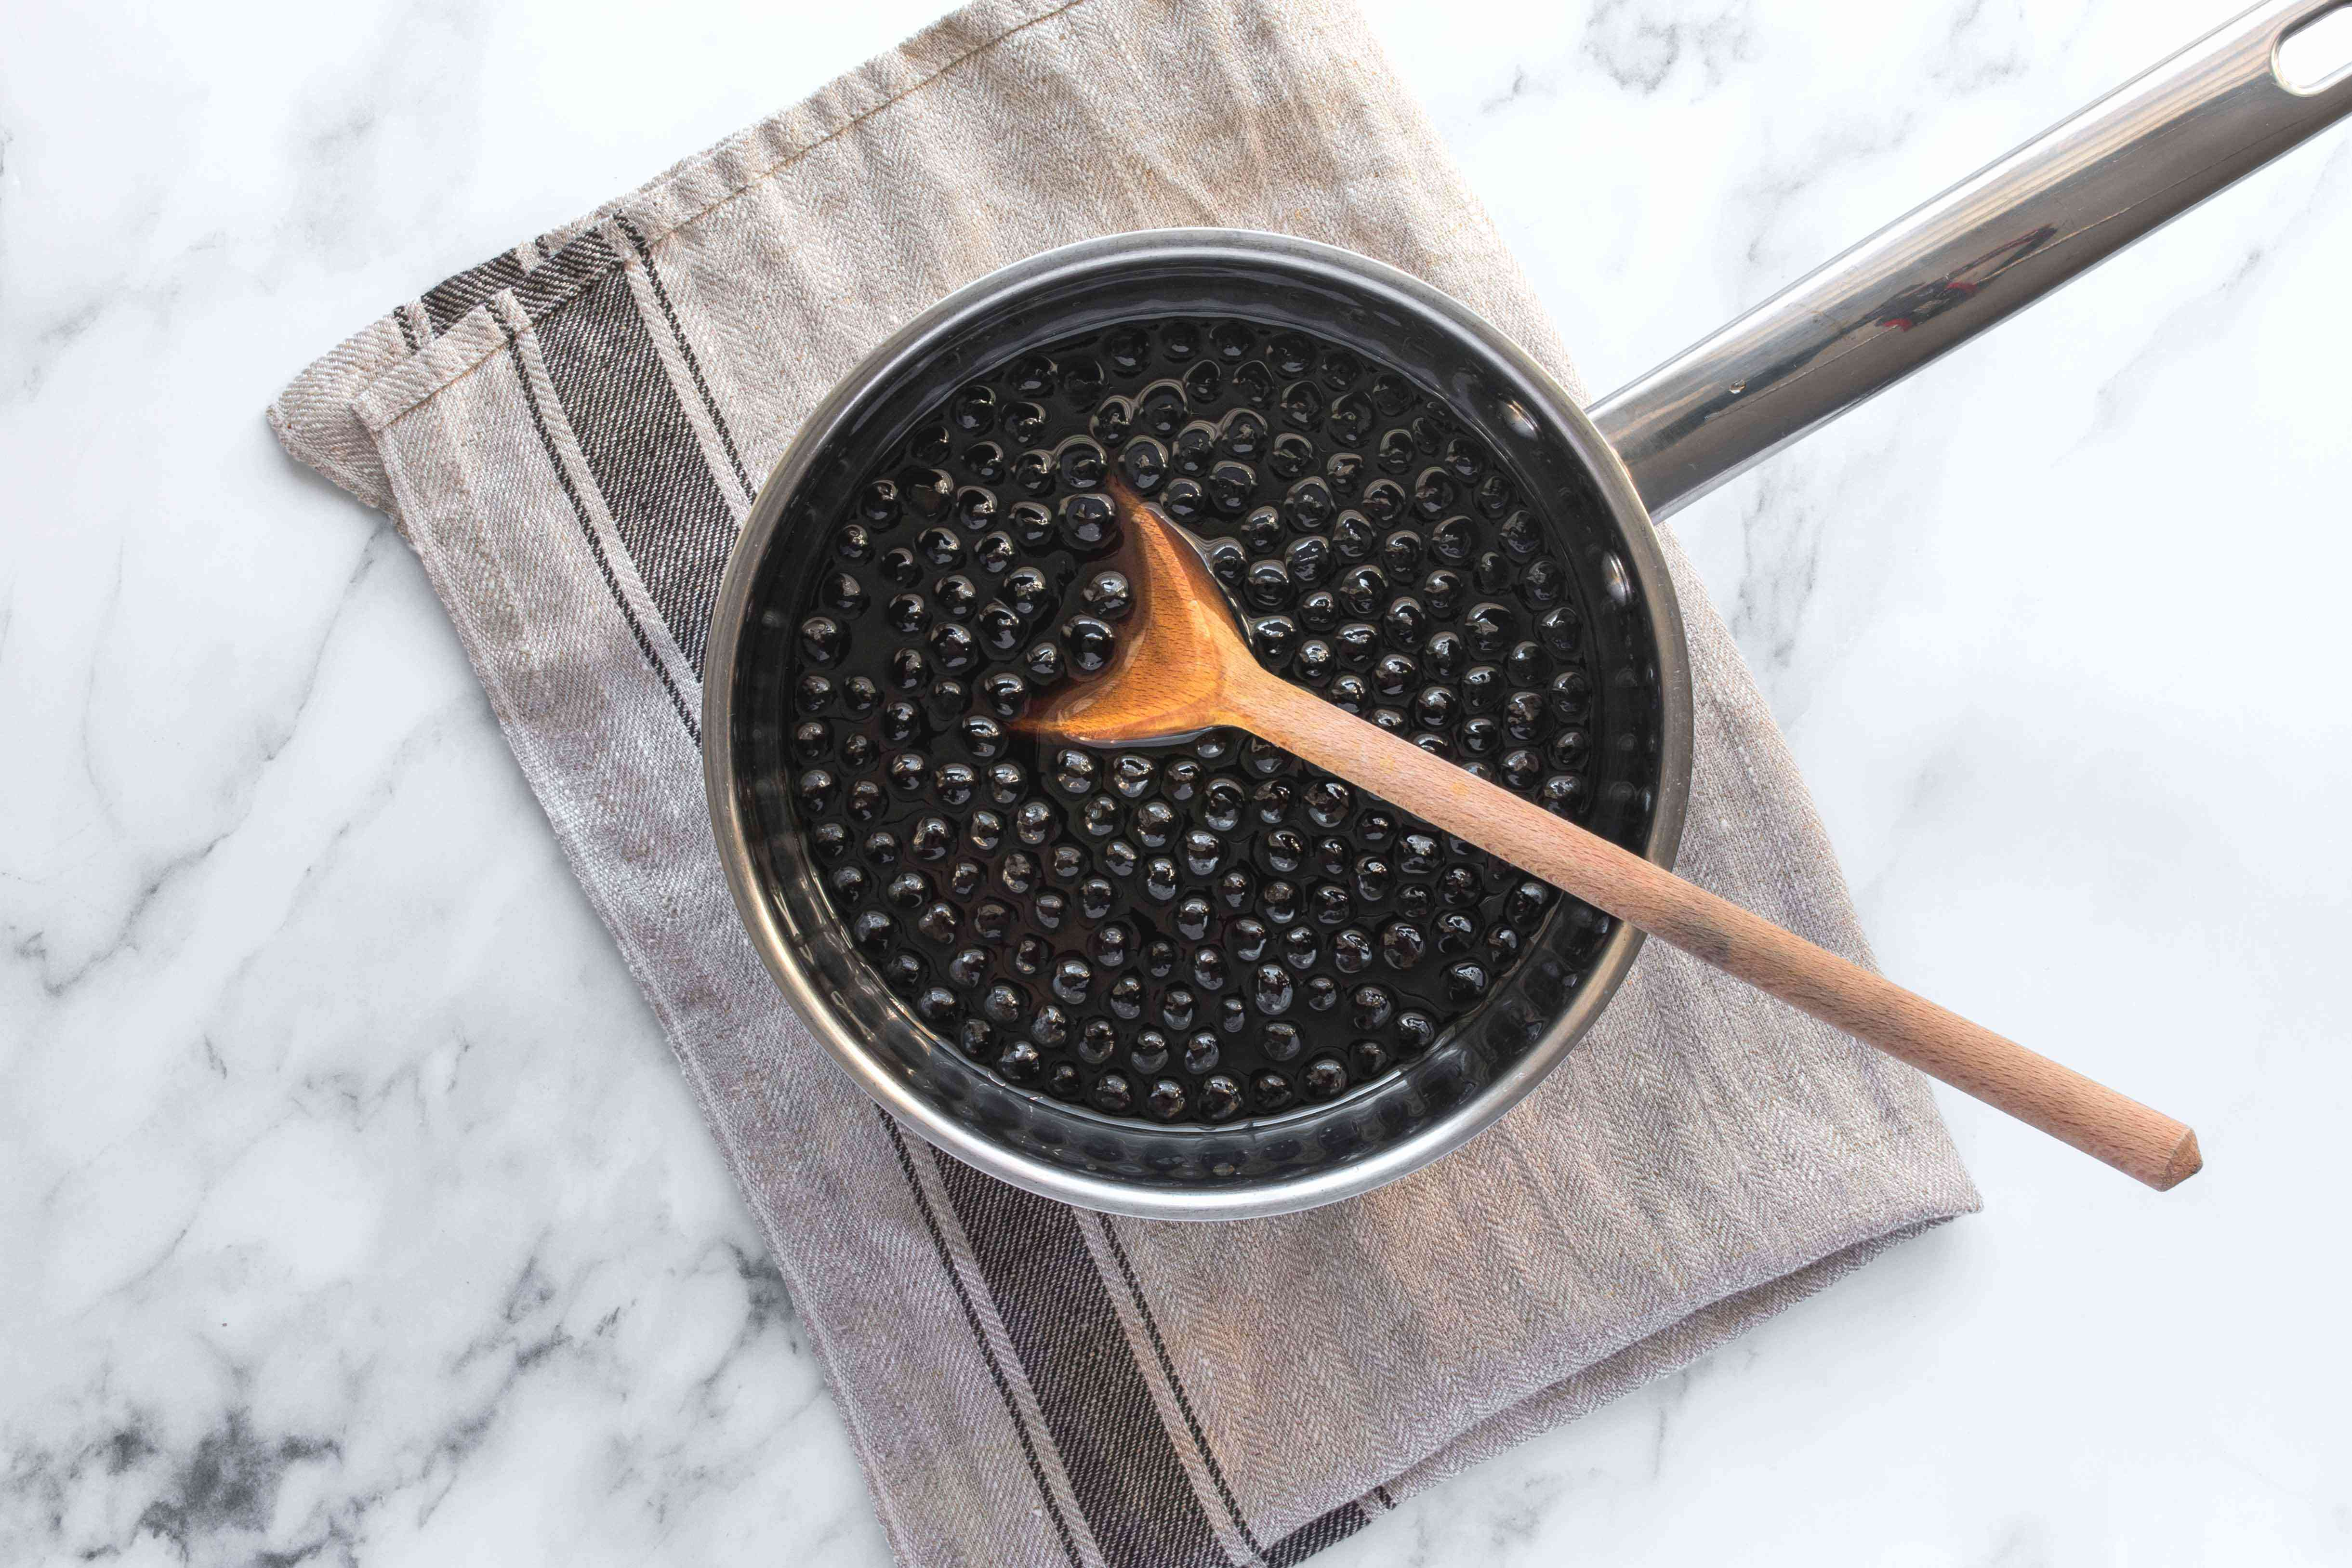 Pearls placed in saucepan with wooden spoon.